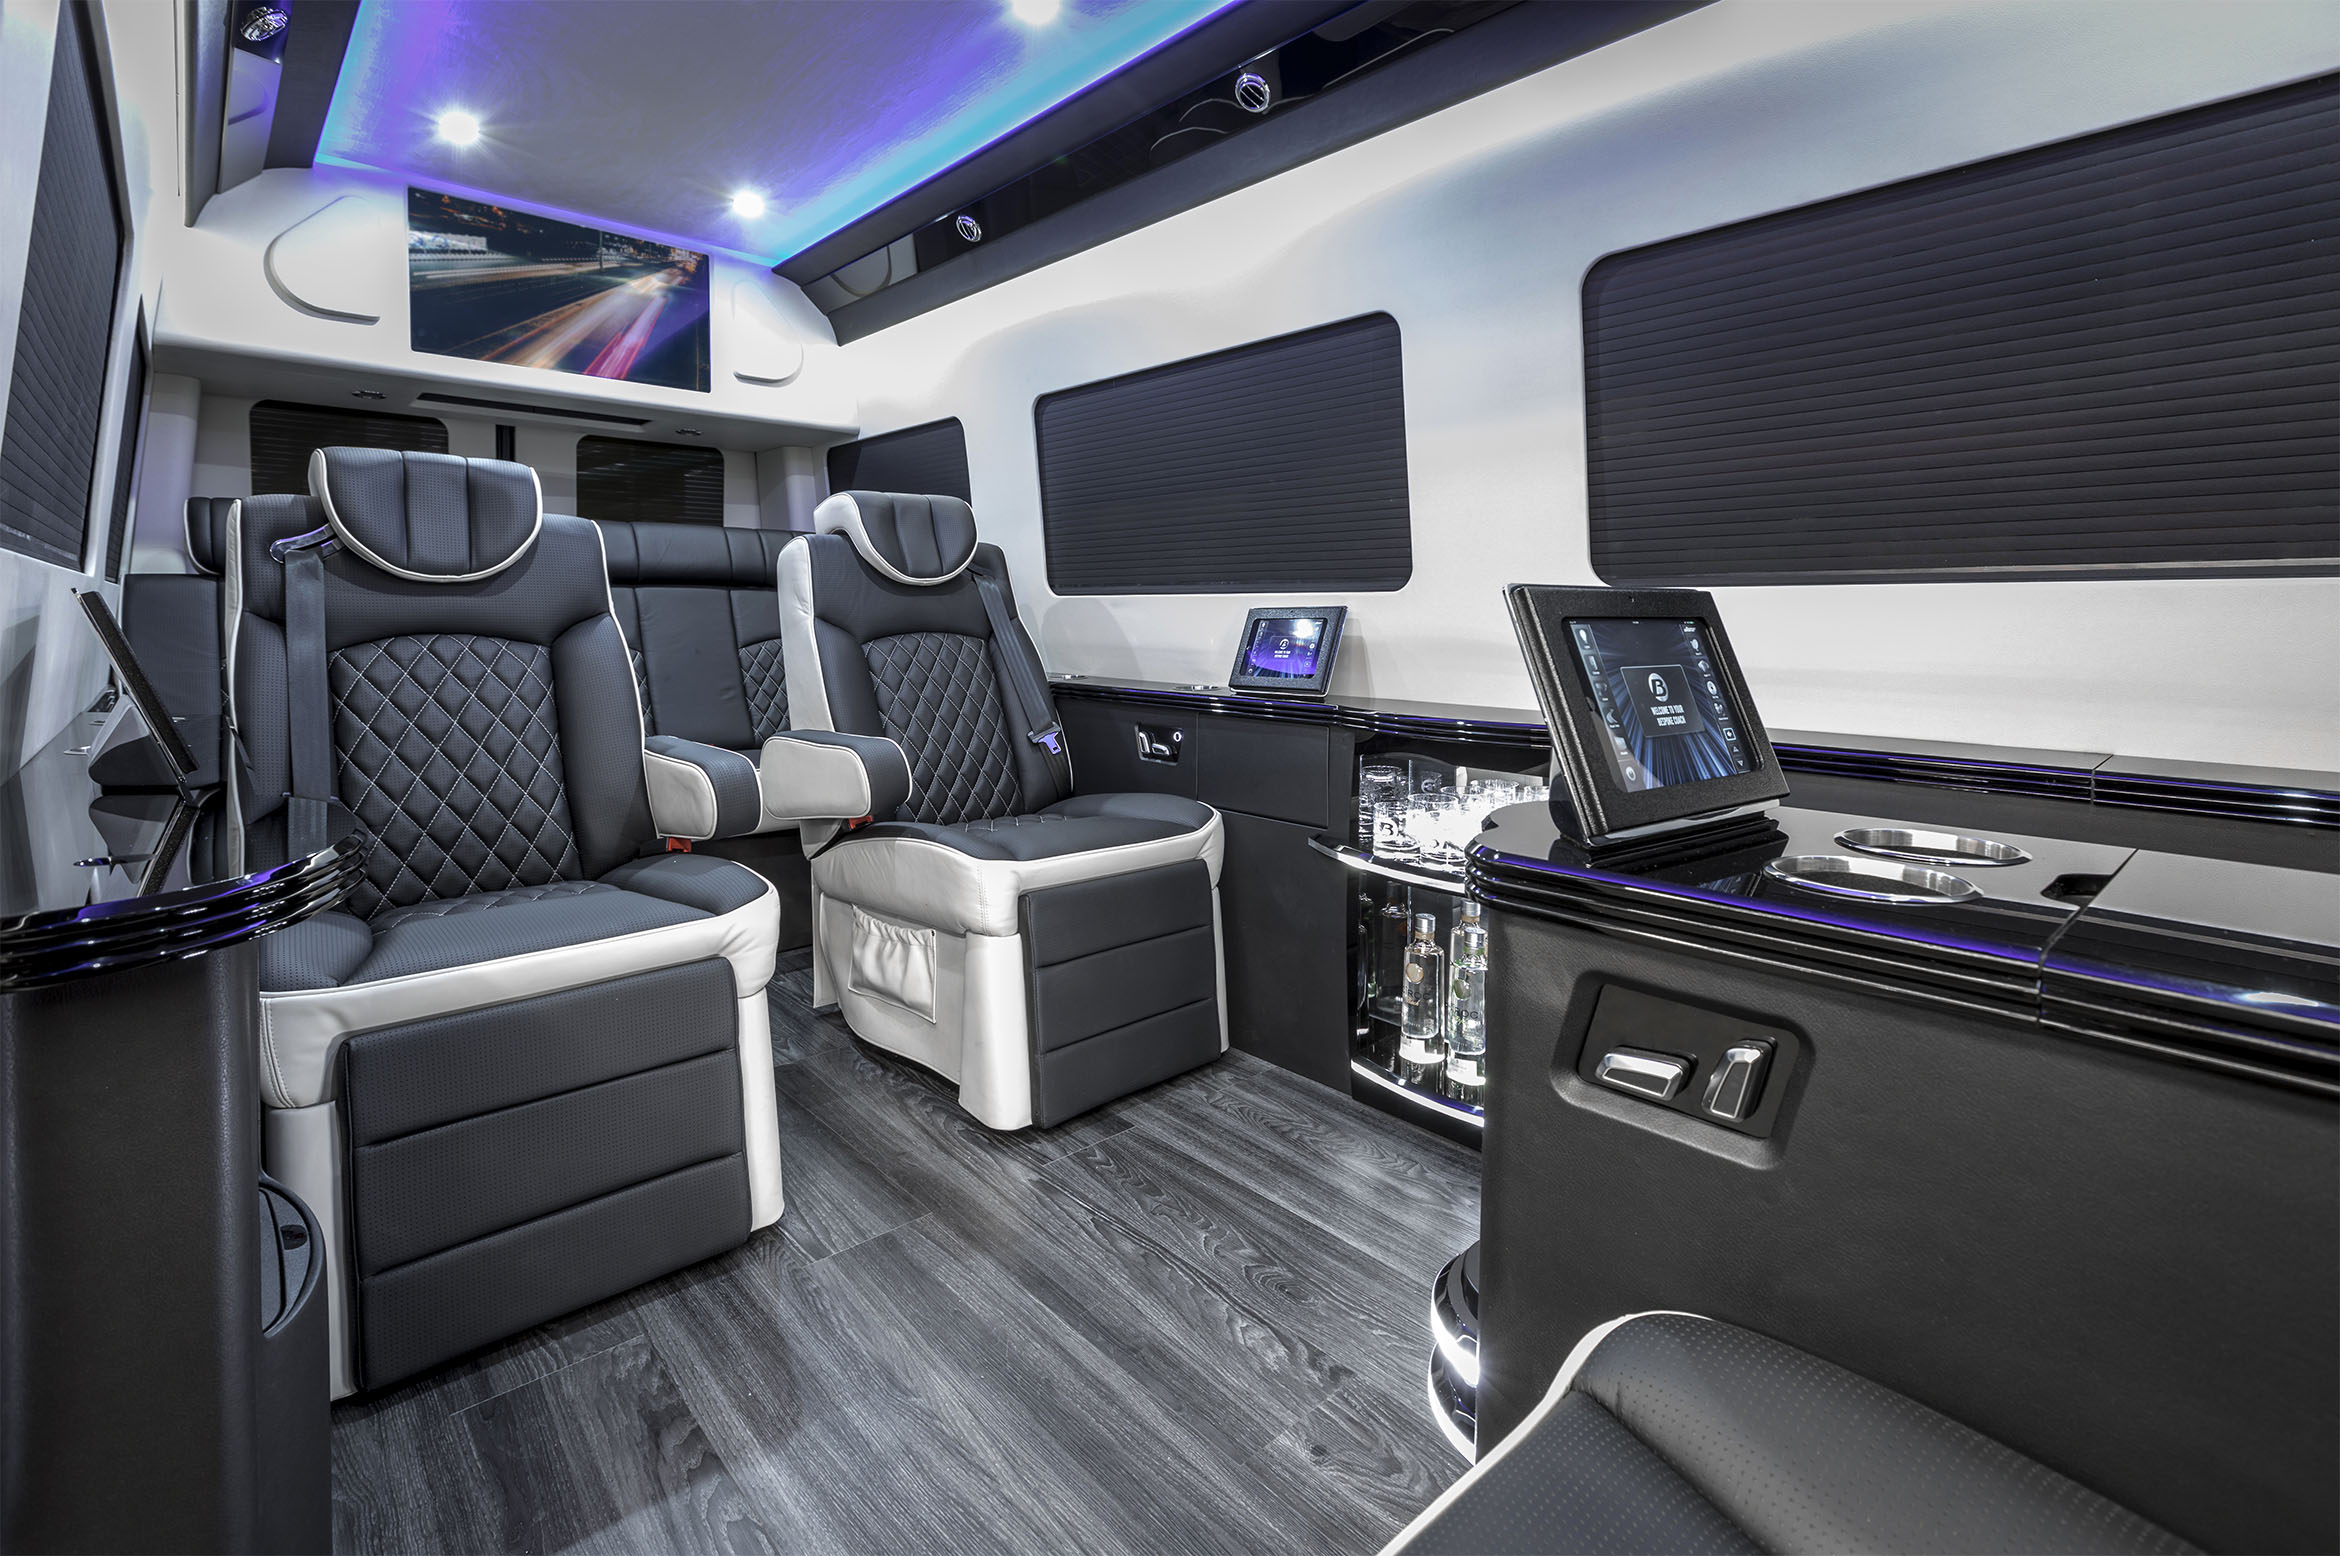 Mercedes Benz Of Oklahoma City Has Partnered With Bespoke Coach To Bring You The Ultimate In Luxury Van Conversions Ranging From Most Premiere